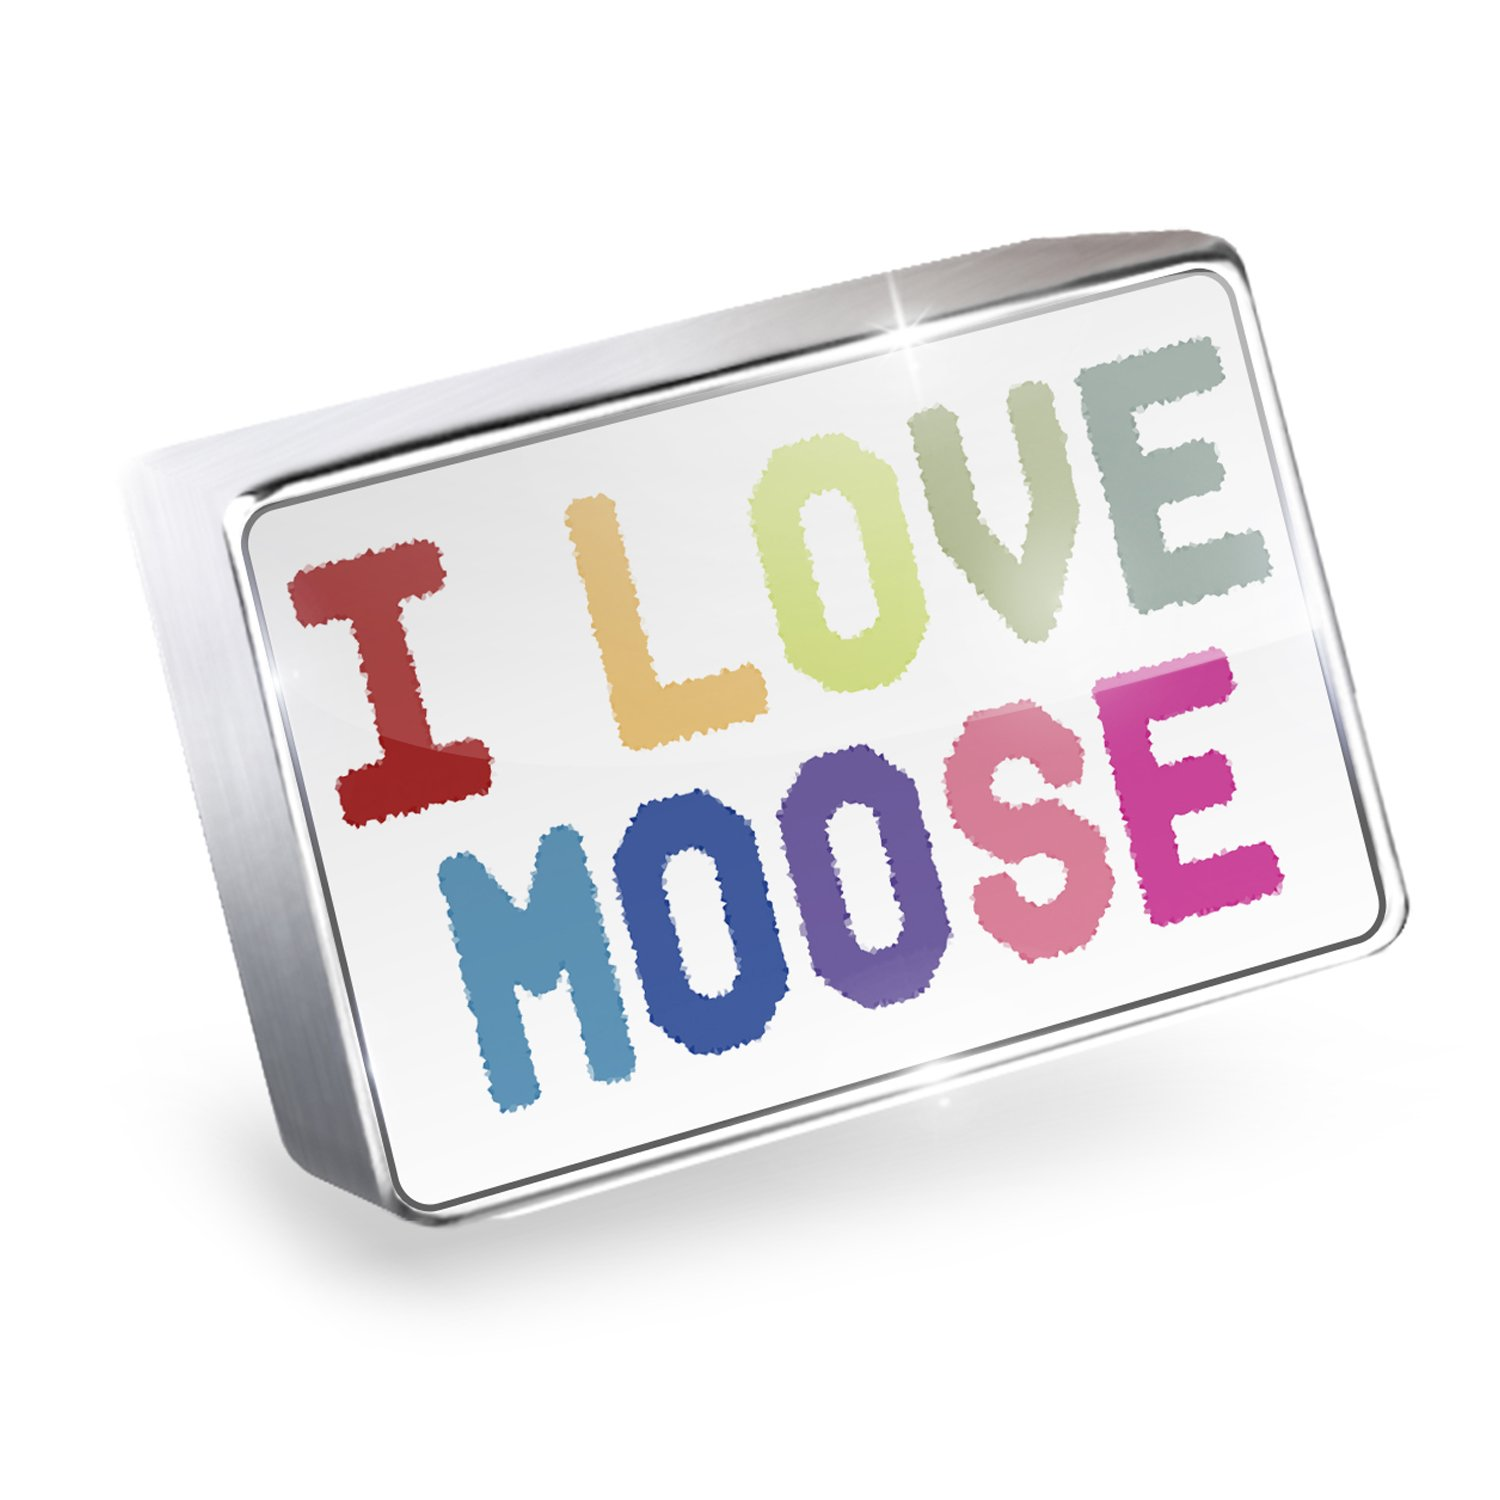 Floating Charm I Love Moose,Colorful Fits Glass Lockets, Neonblond